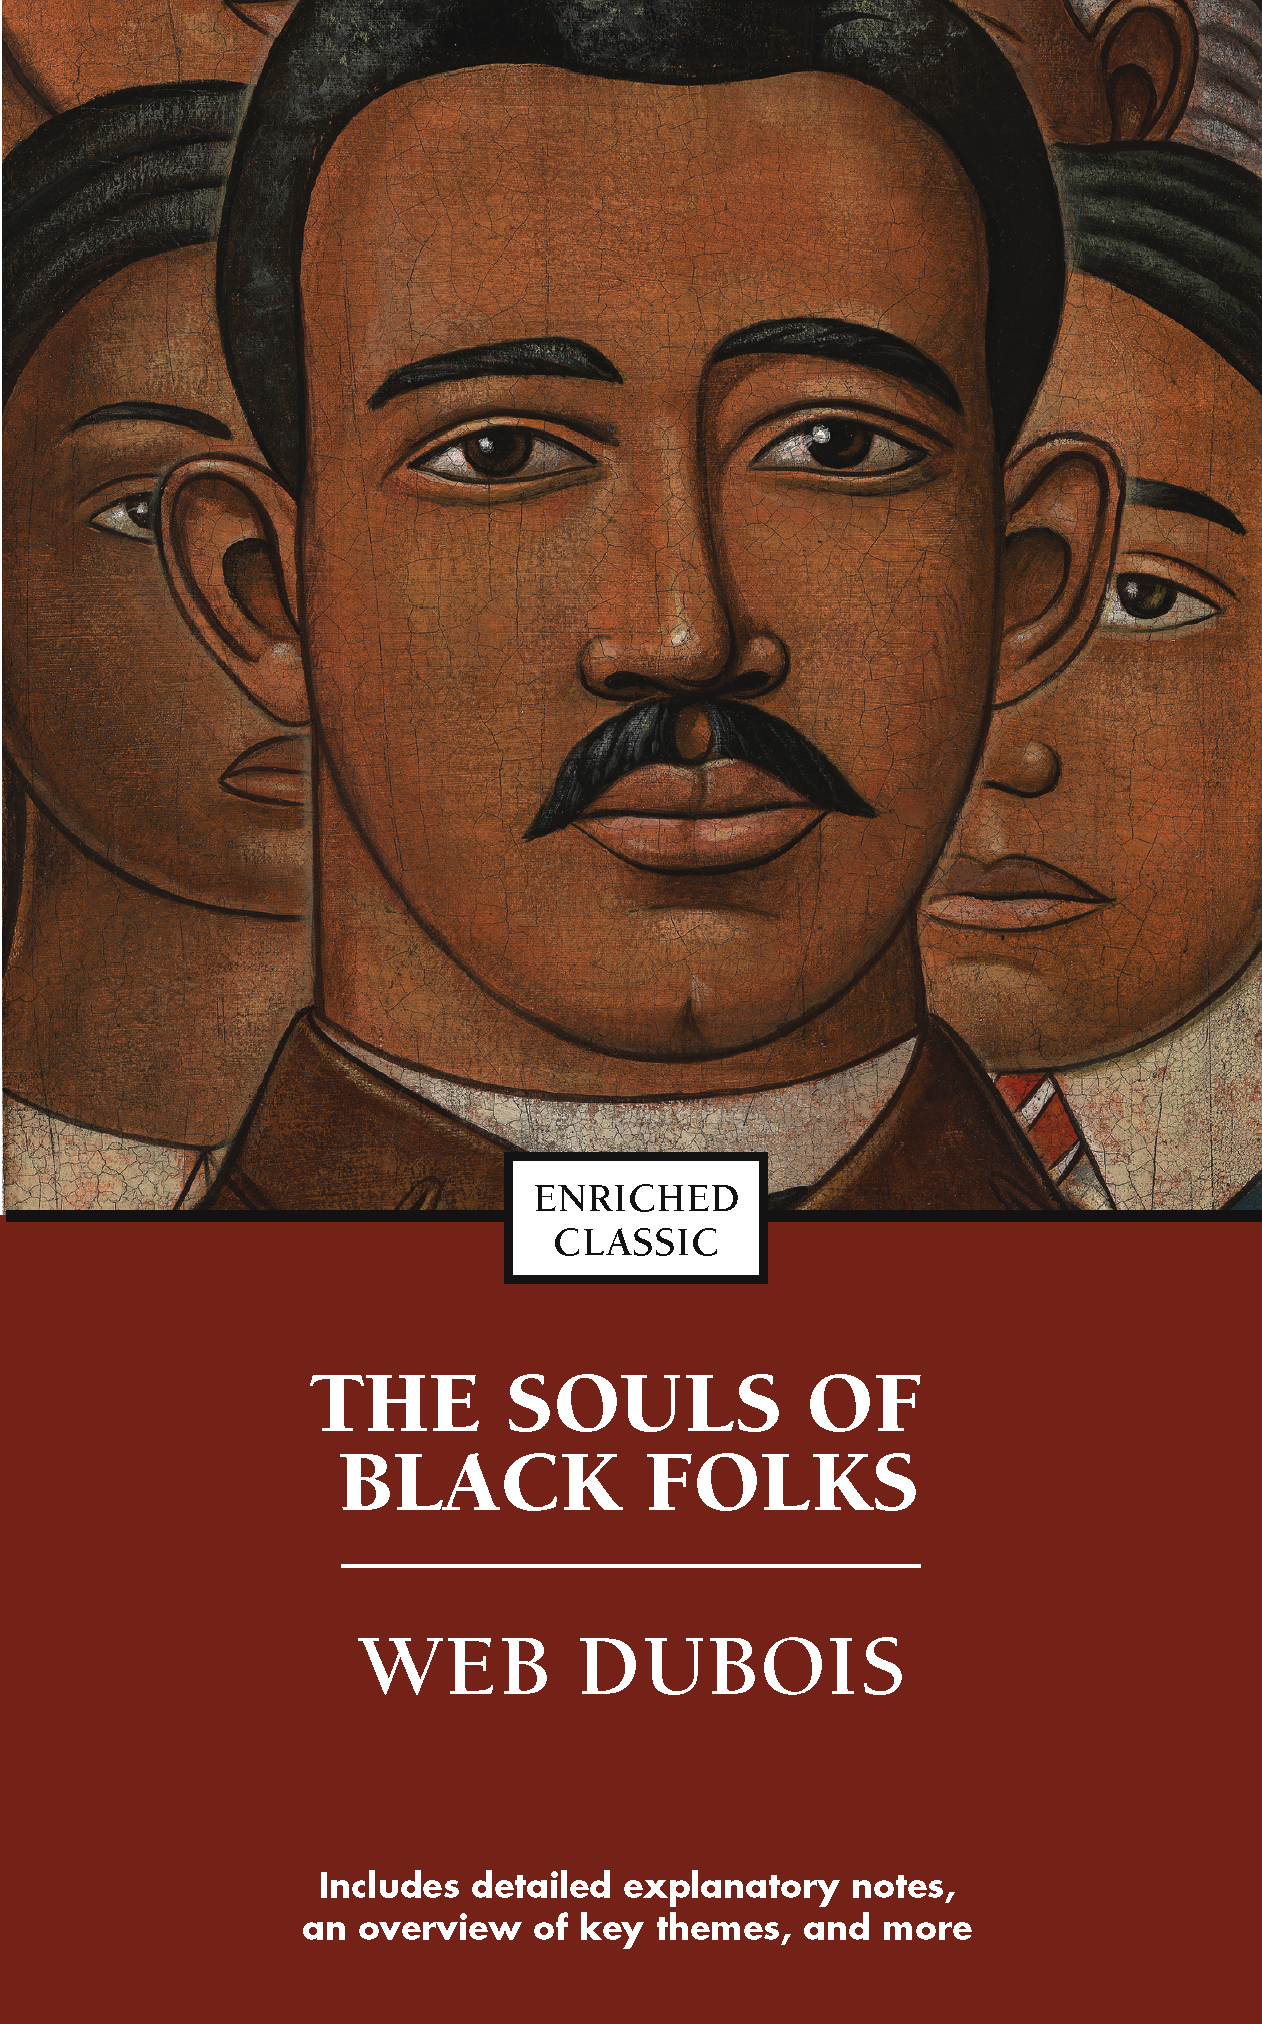 a literary analysis of the souls of black folk by du bois The souls of black folk is a classic work of american literature by w e b du bois it is a seminal work in the history of sociology, and a cornerstone of african-american literary history.